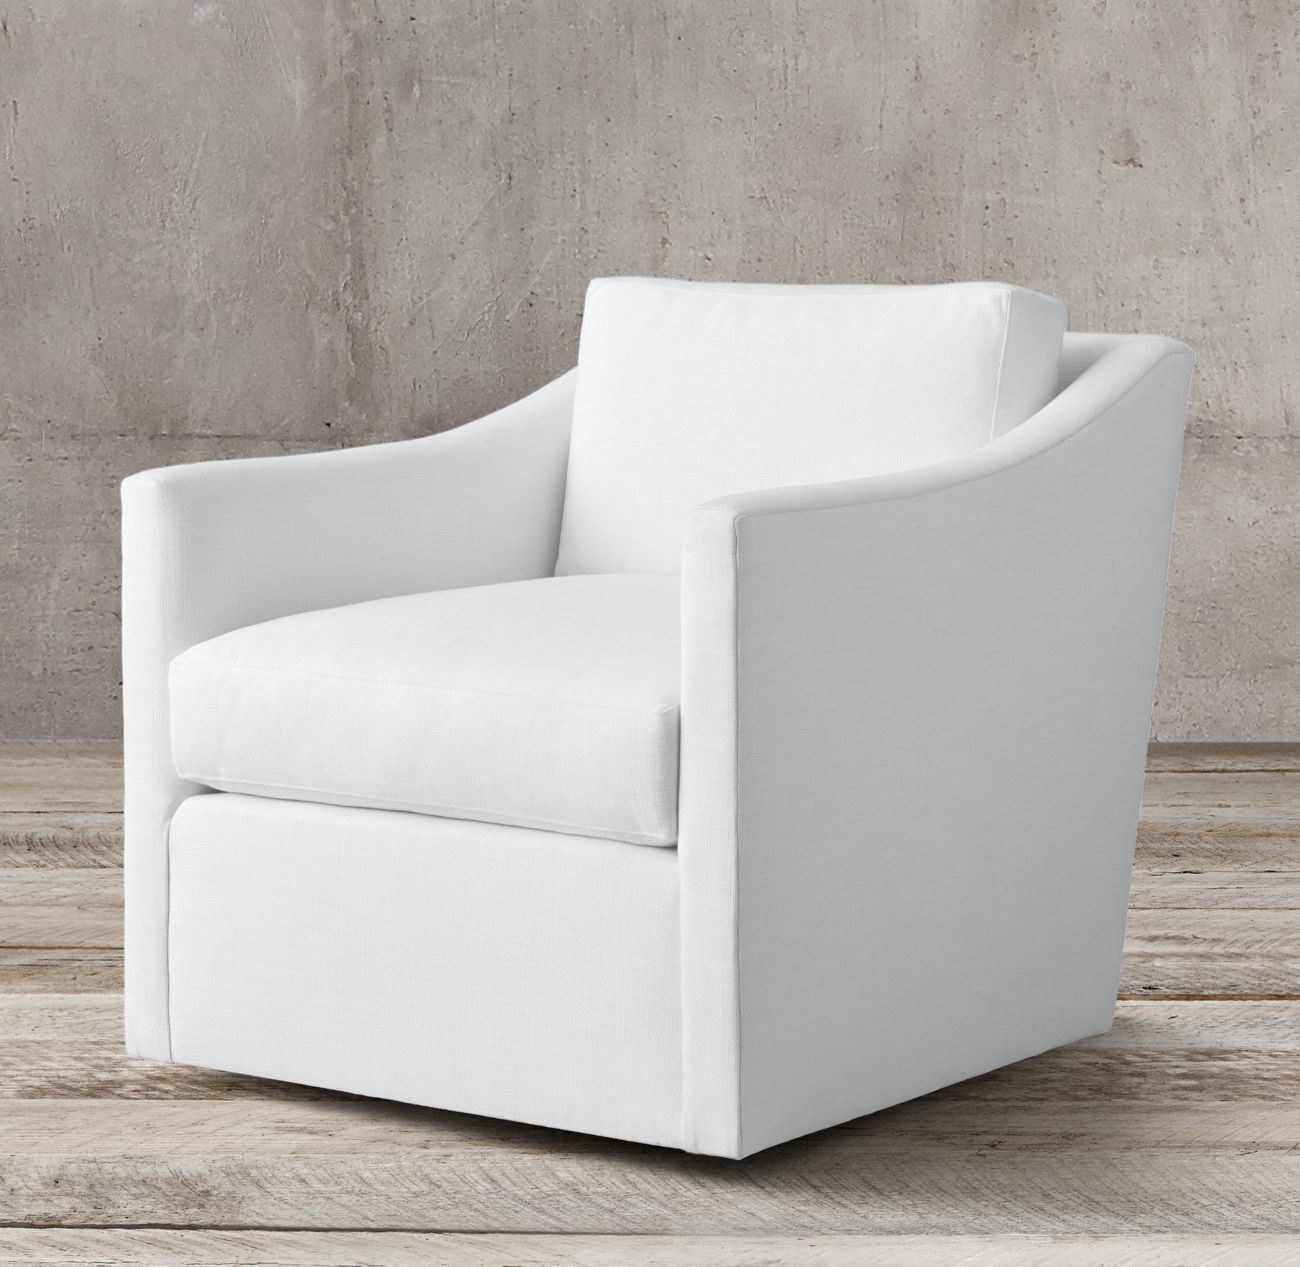 Reading Corner Chair For Master Bedroom In 2020 Swivel Chair Living Room Swivel Chair Accent Chairs For Sale